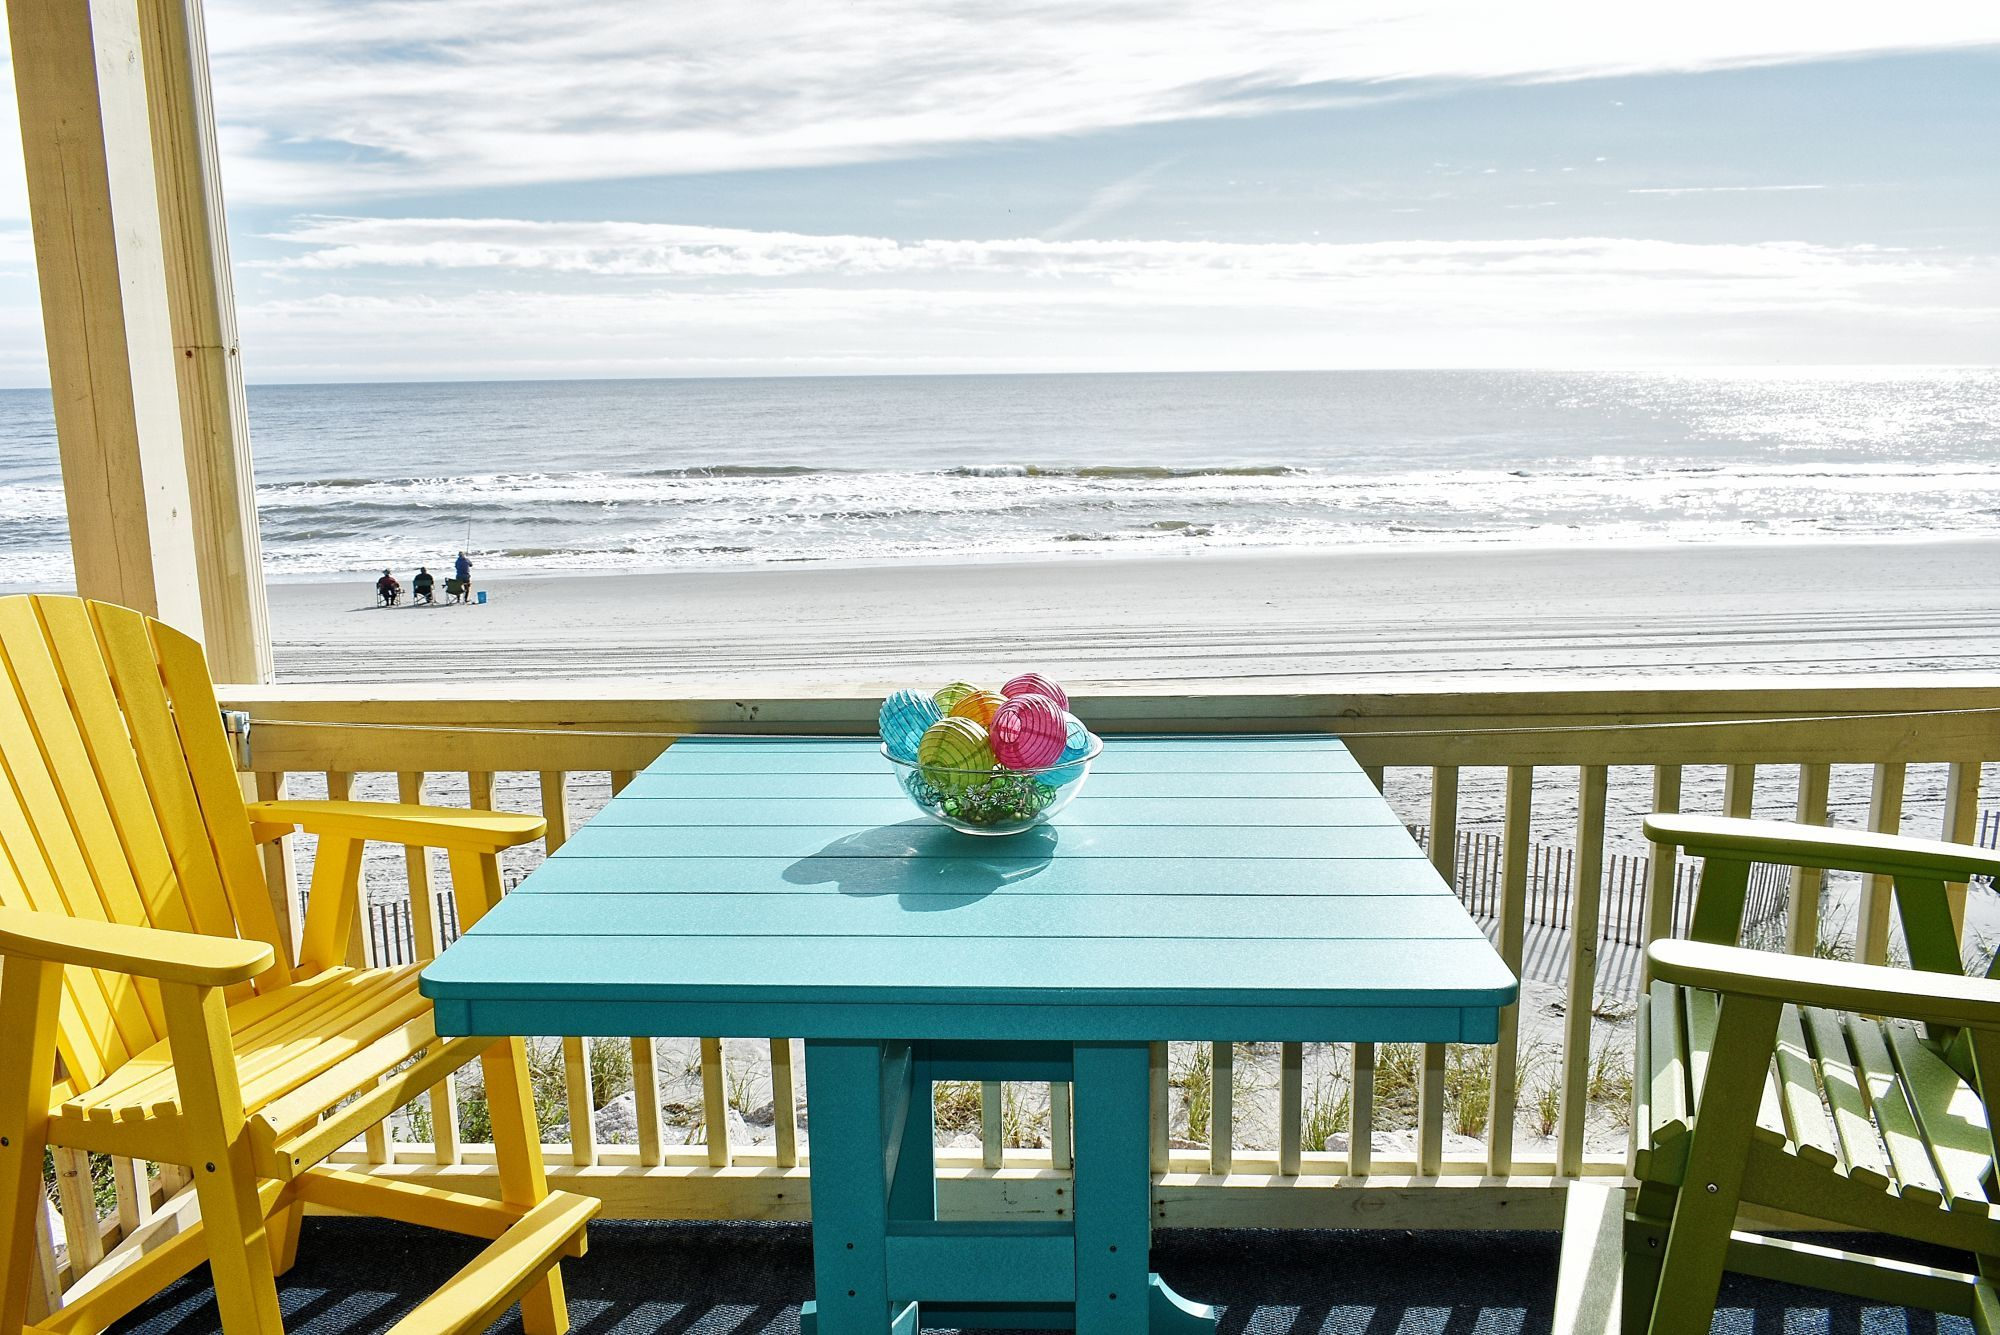 Beach House 206 Is A Two Bedroom Two Bath Oceanfront Condo Located 0 4 Miles North Of Garden City Pier This Unit Has Beach House Oceanfront Condo Garden City